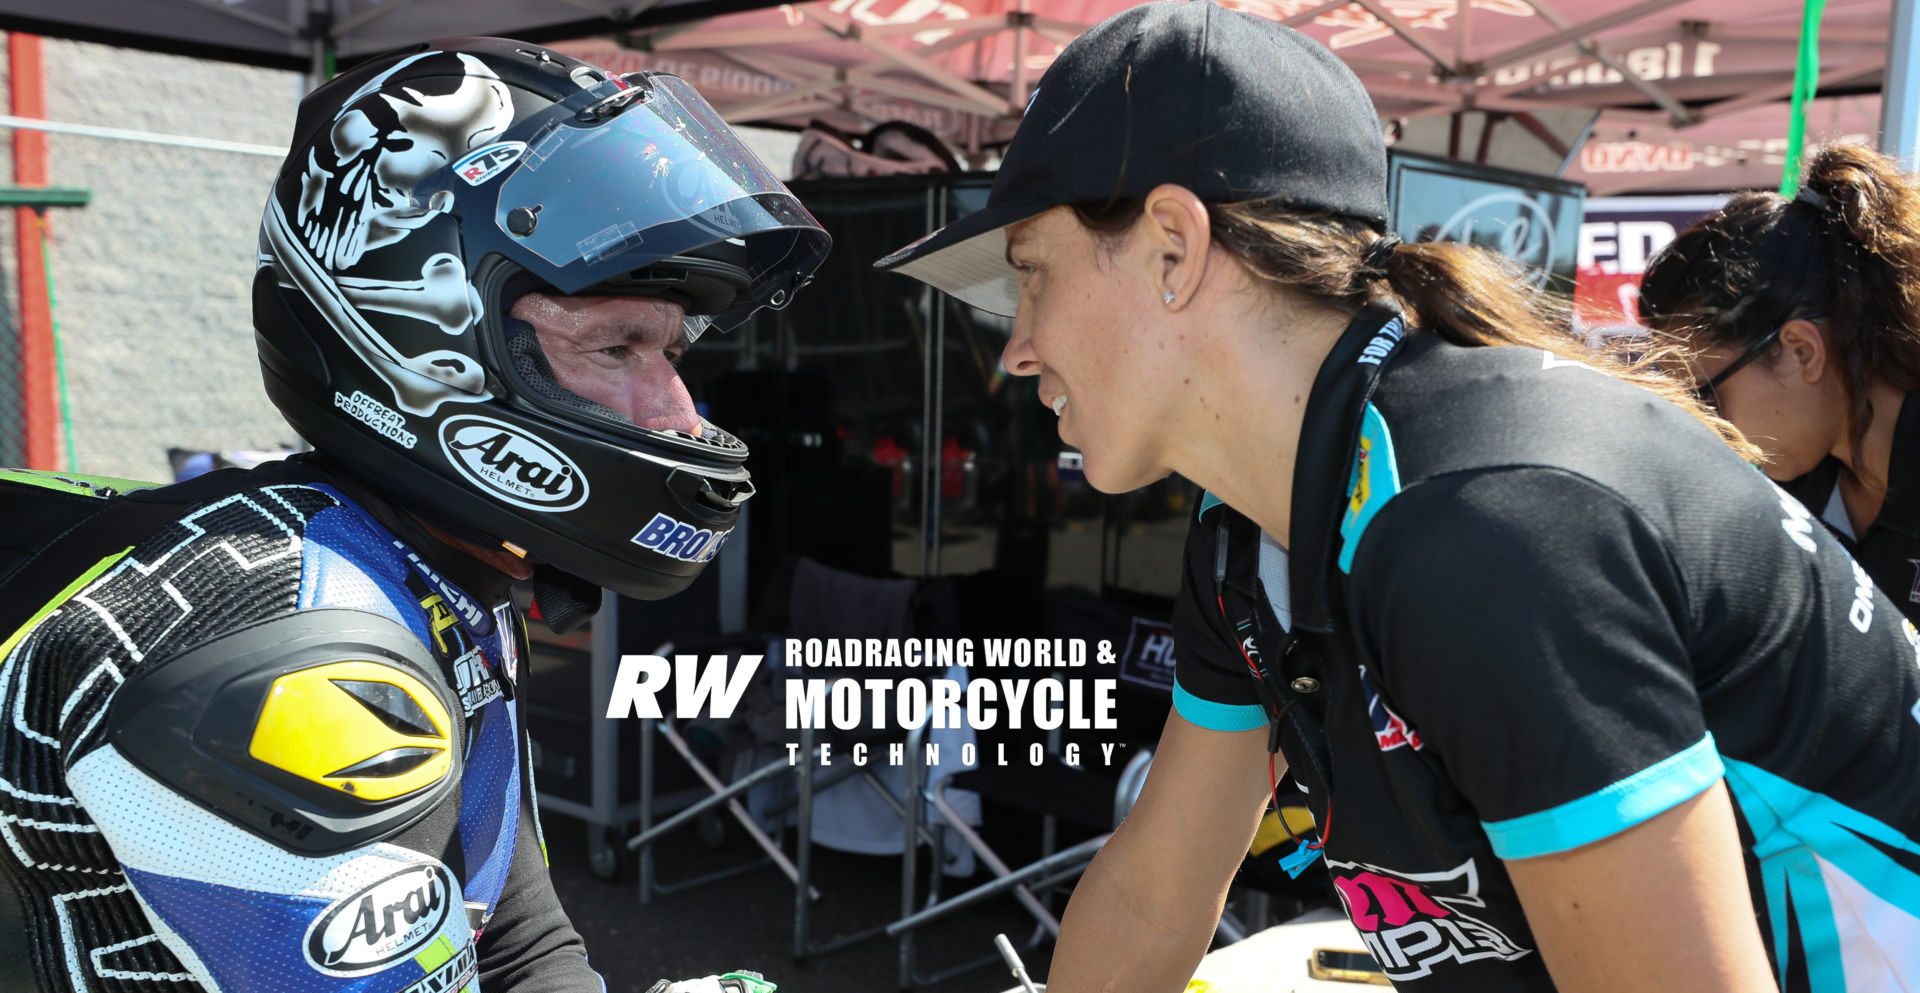 Josh Hayes (left) with his wife, MP13 Racing team owner and MotoAmerica racer Melissa Paris, at New Jersey Motorsports Park in 2019. Photo by Brian J. Nelson.